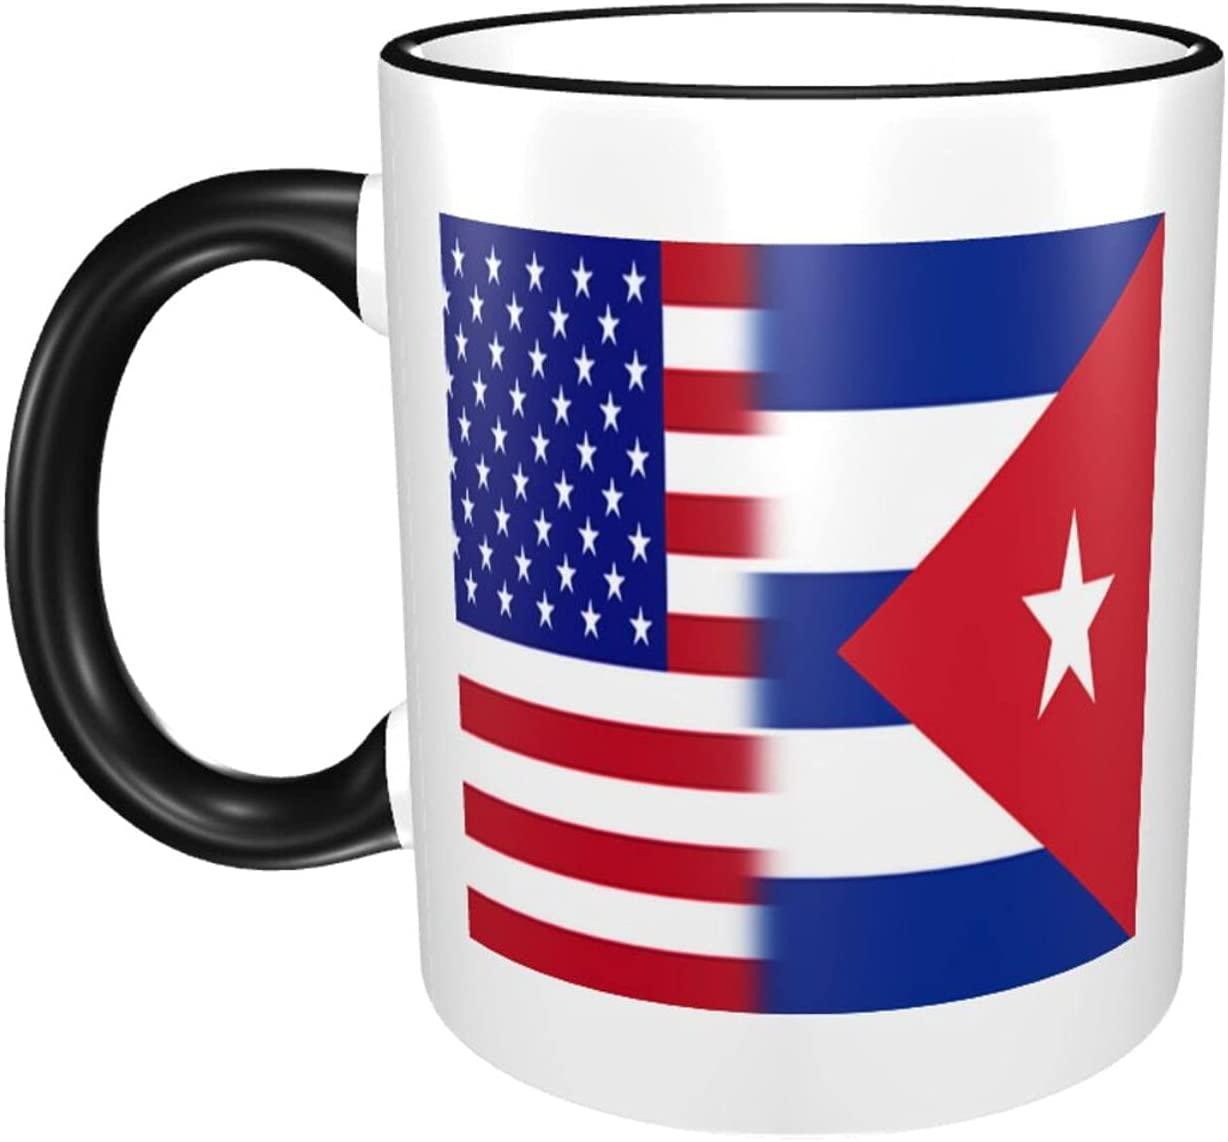 Mixed Usa Cuba Flag Mugs Black One Women for Coffee Large-scale sale Popular product Mug Size and